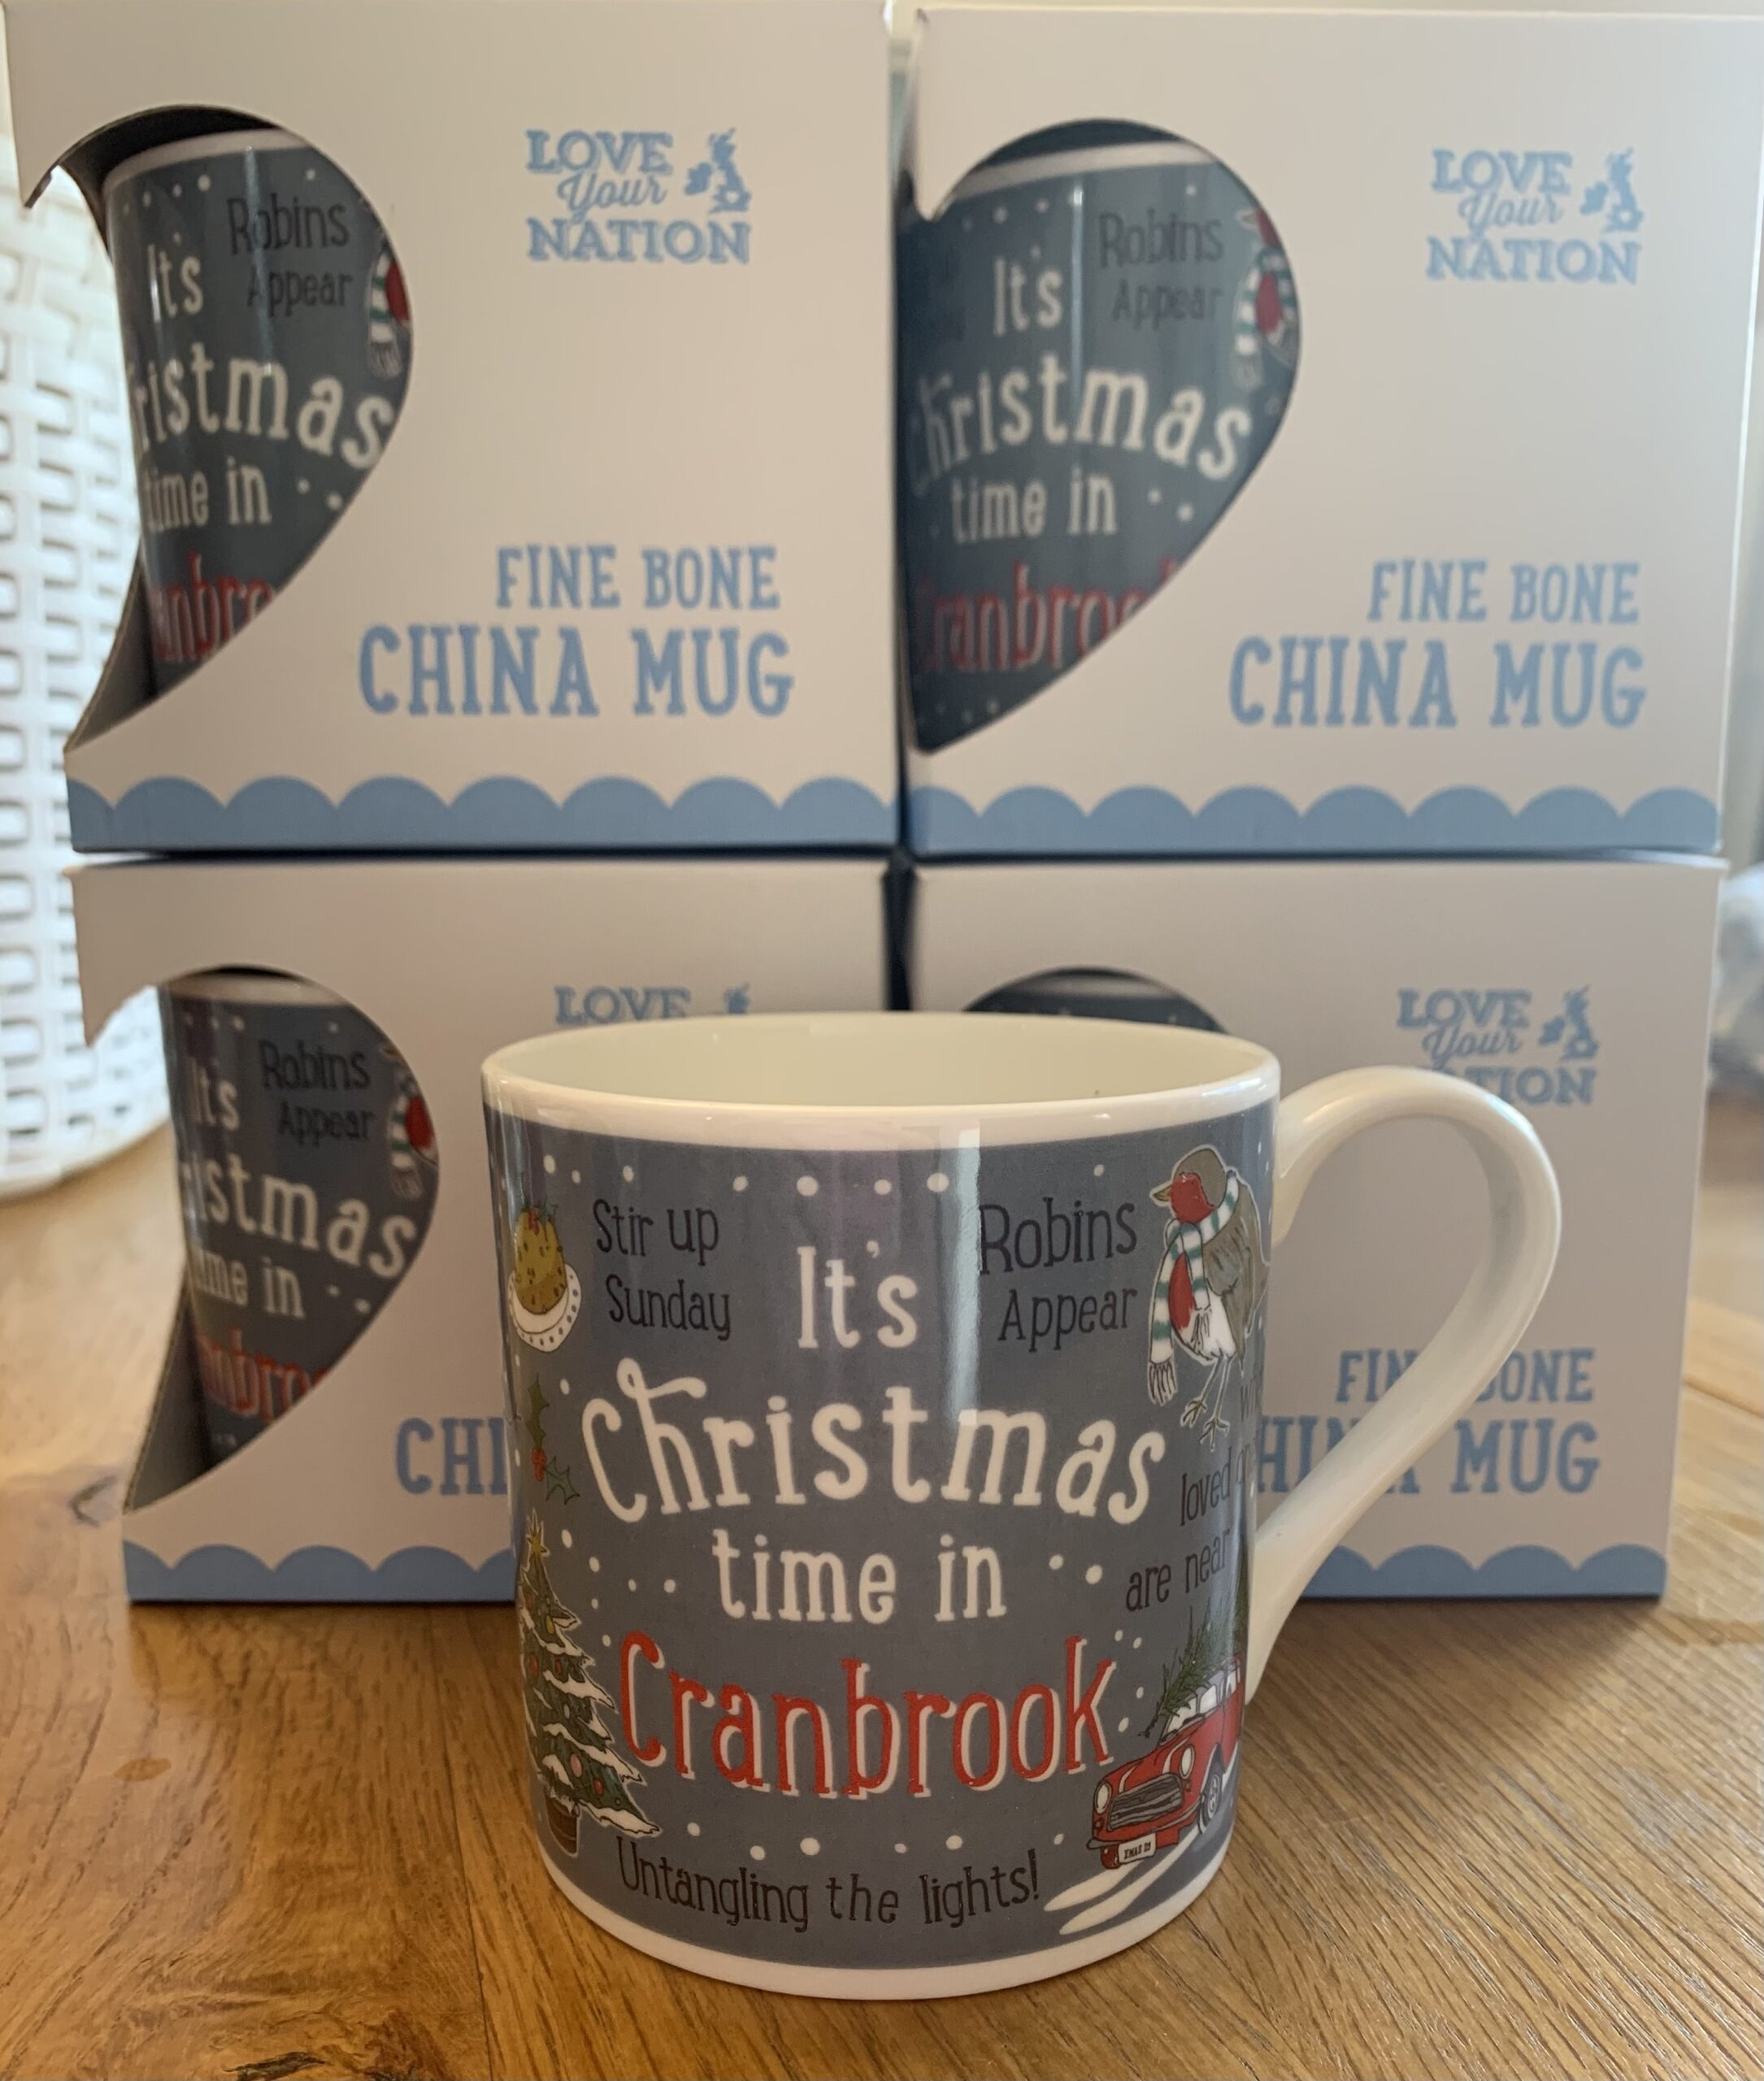 Its christmas time in cranbrook mug by love your nation